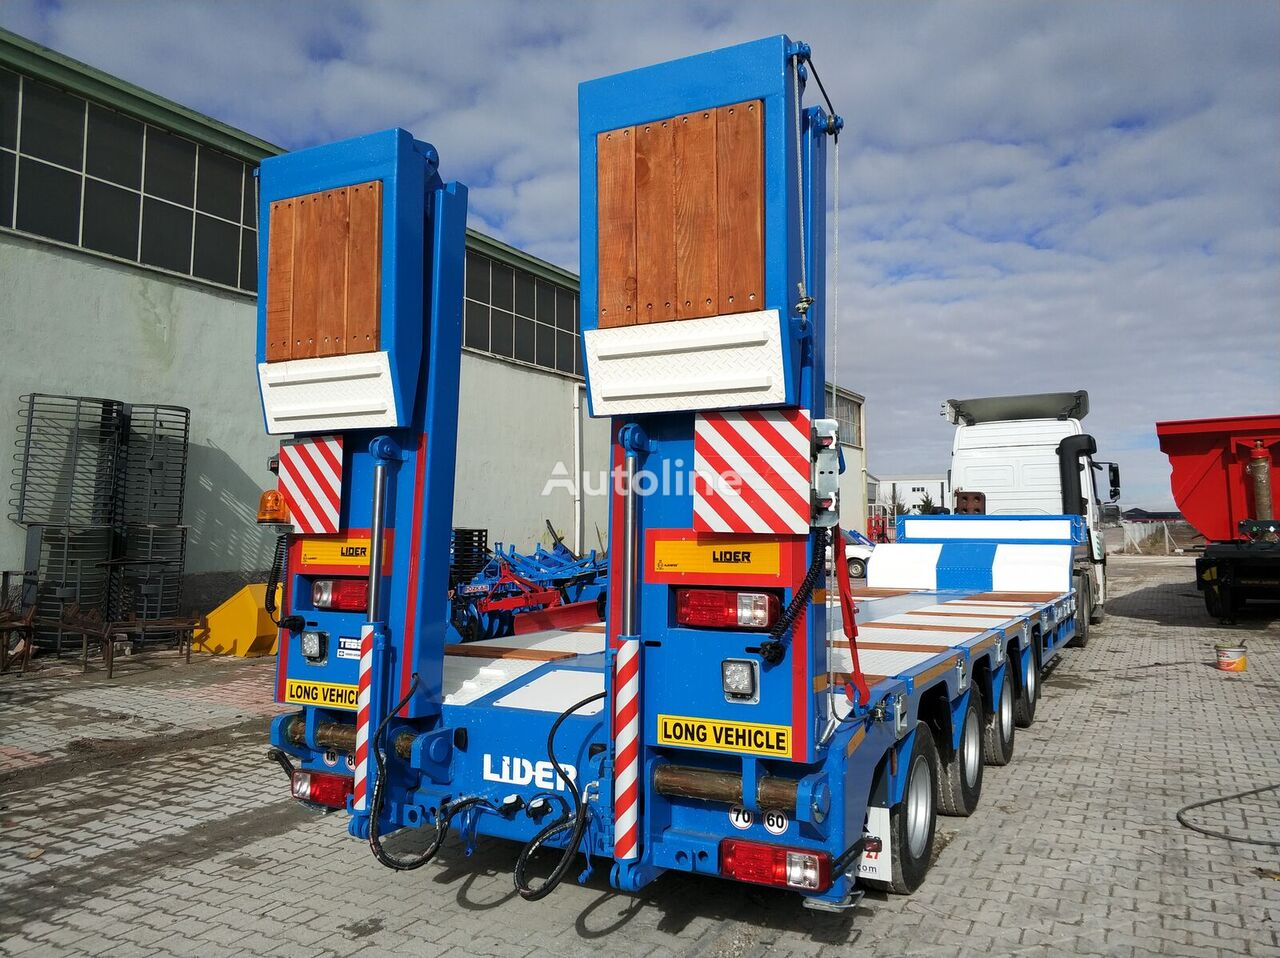 semi-remorque porte-engins LIDER 2020  model new directly from manufacturer company available sel neuve